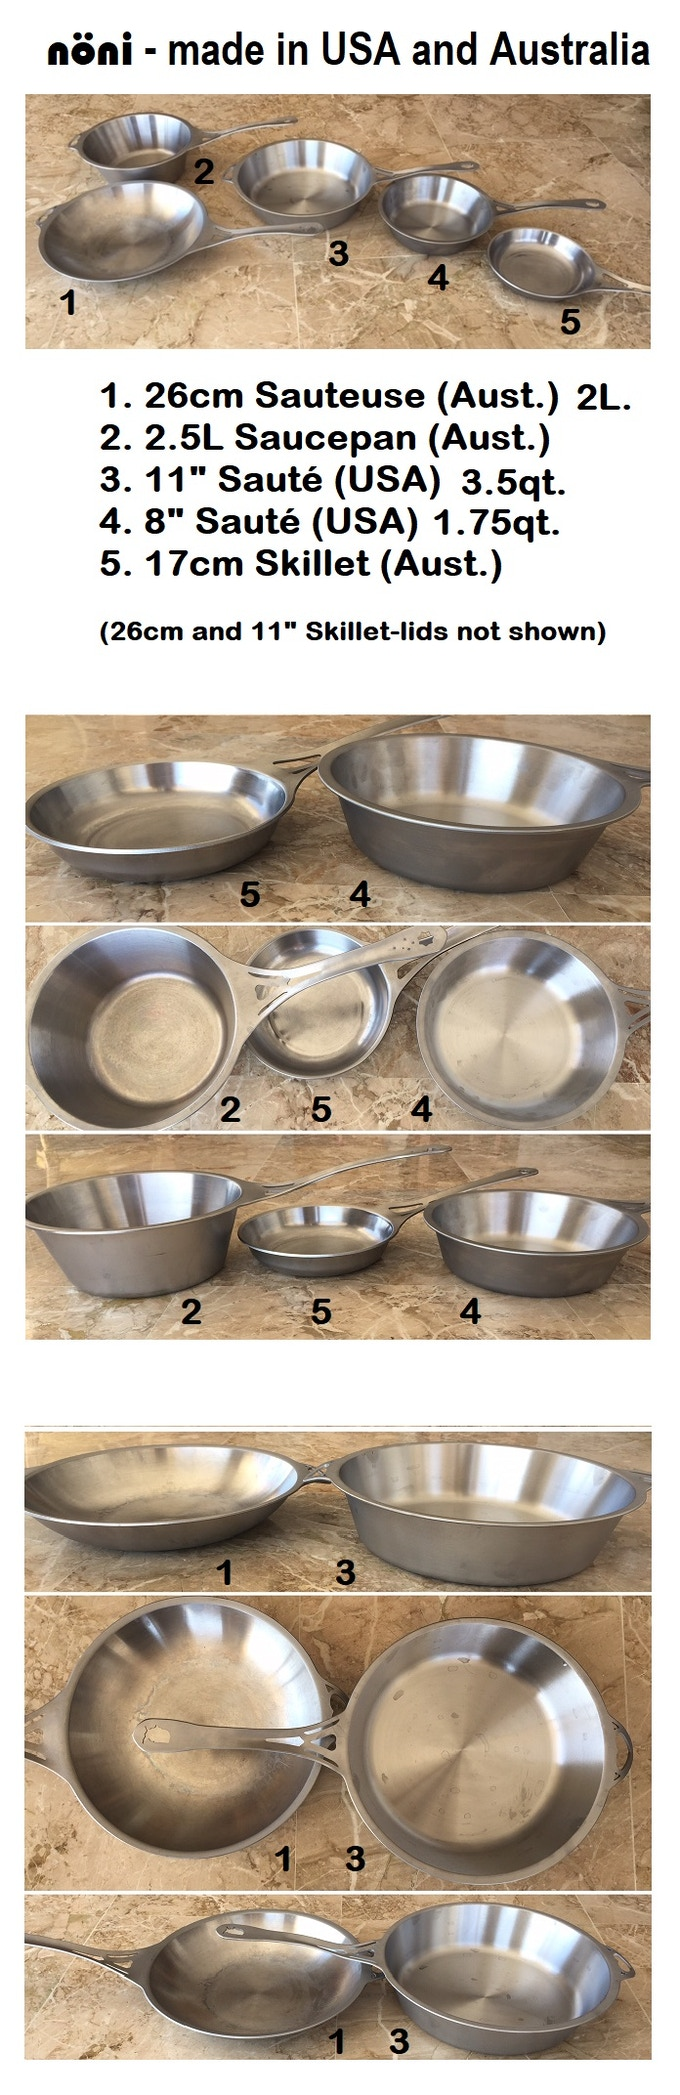 """Beware of photo perspectives! The new 11"""" Sauté has much more capacity than our 26cm Sauteuse (and very different walls), and the 8"""" Sauté is much bigger/deeper than our 17cm Skillet."""